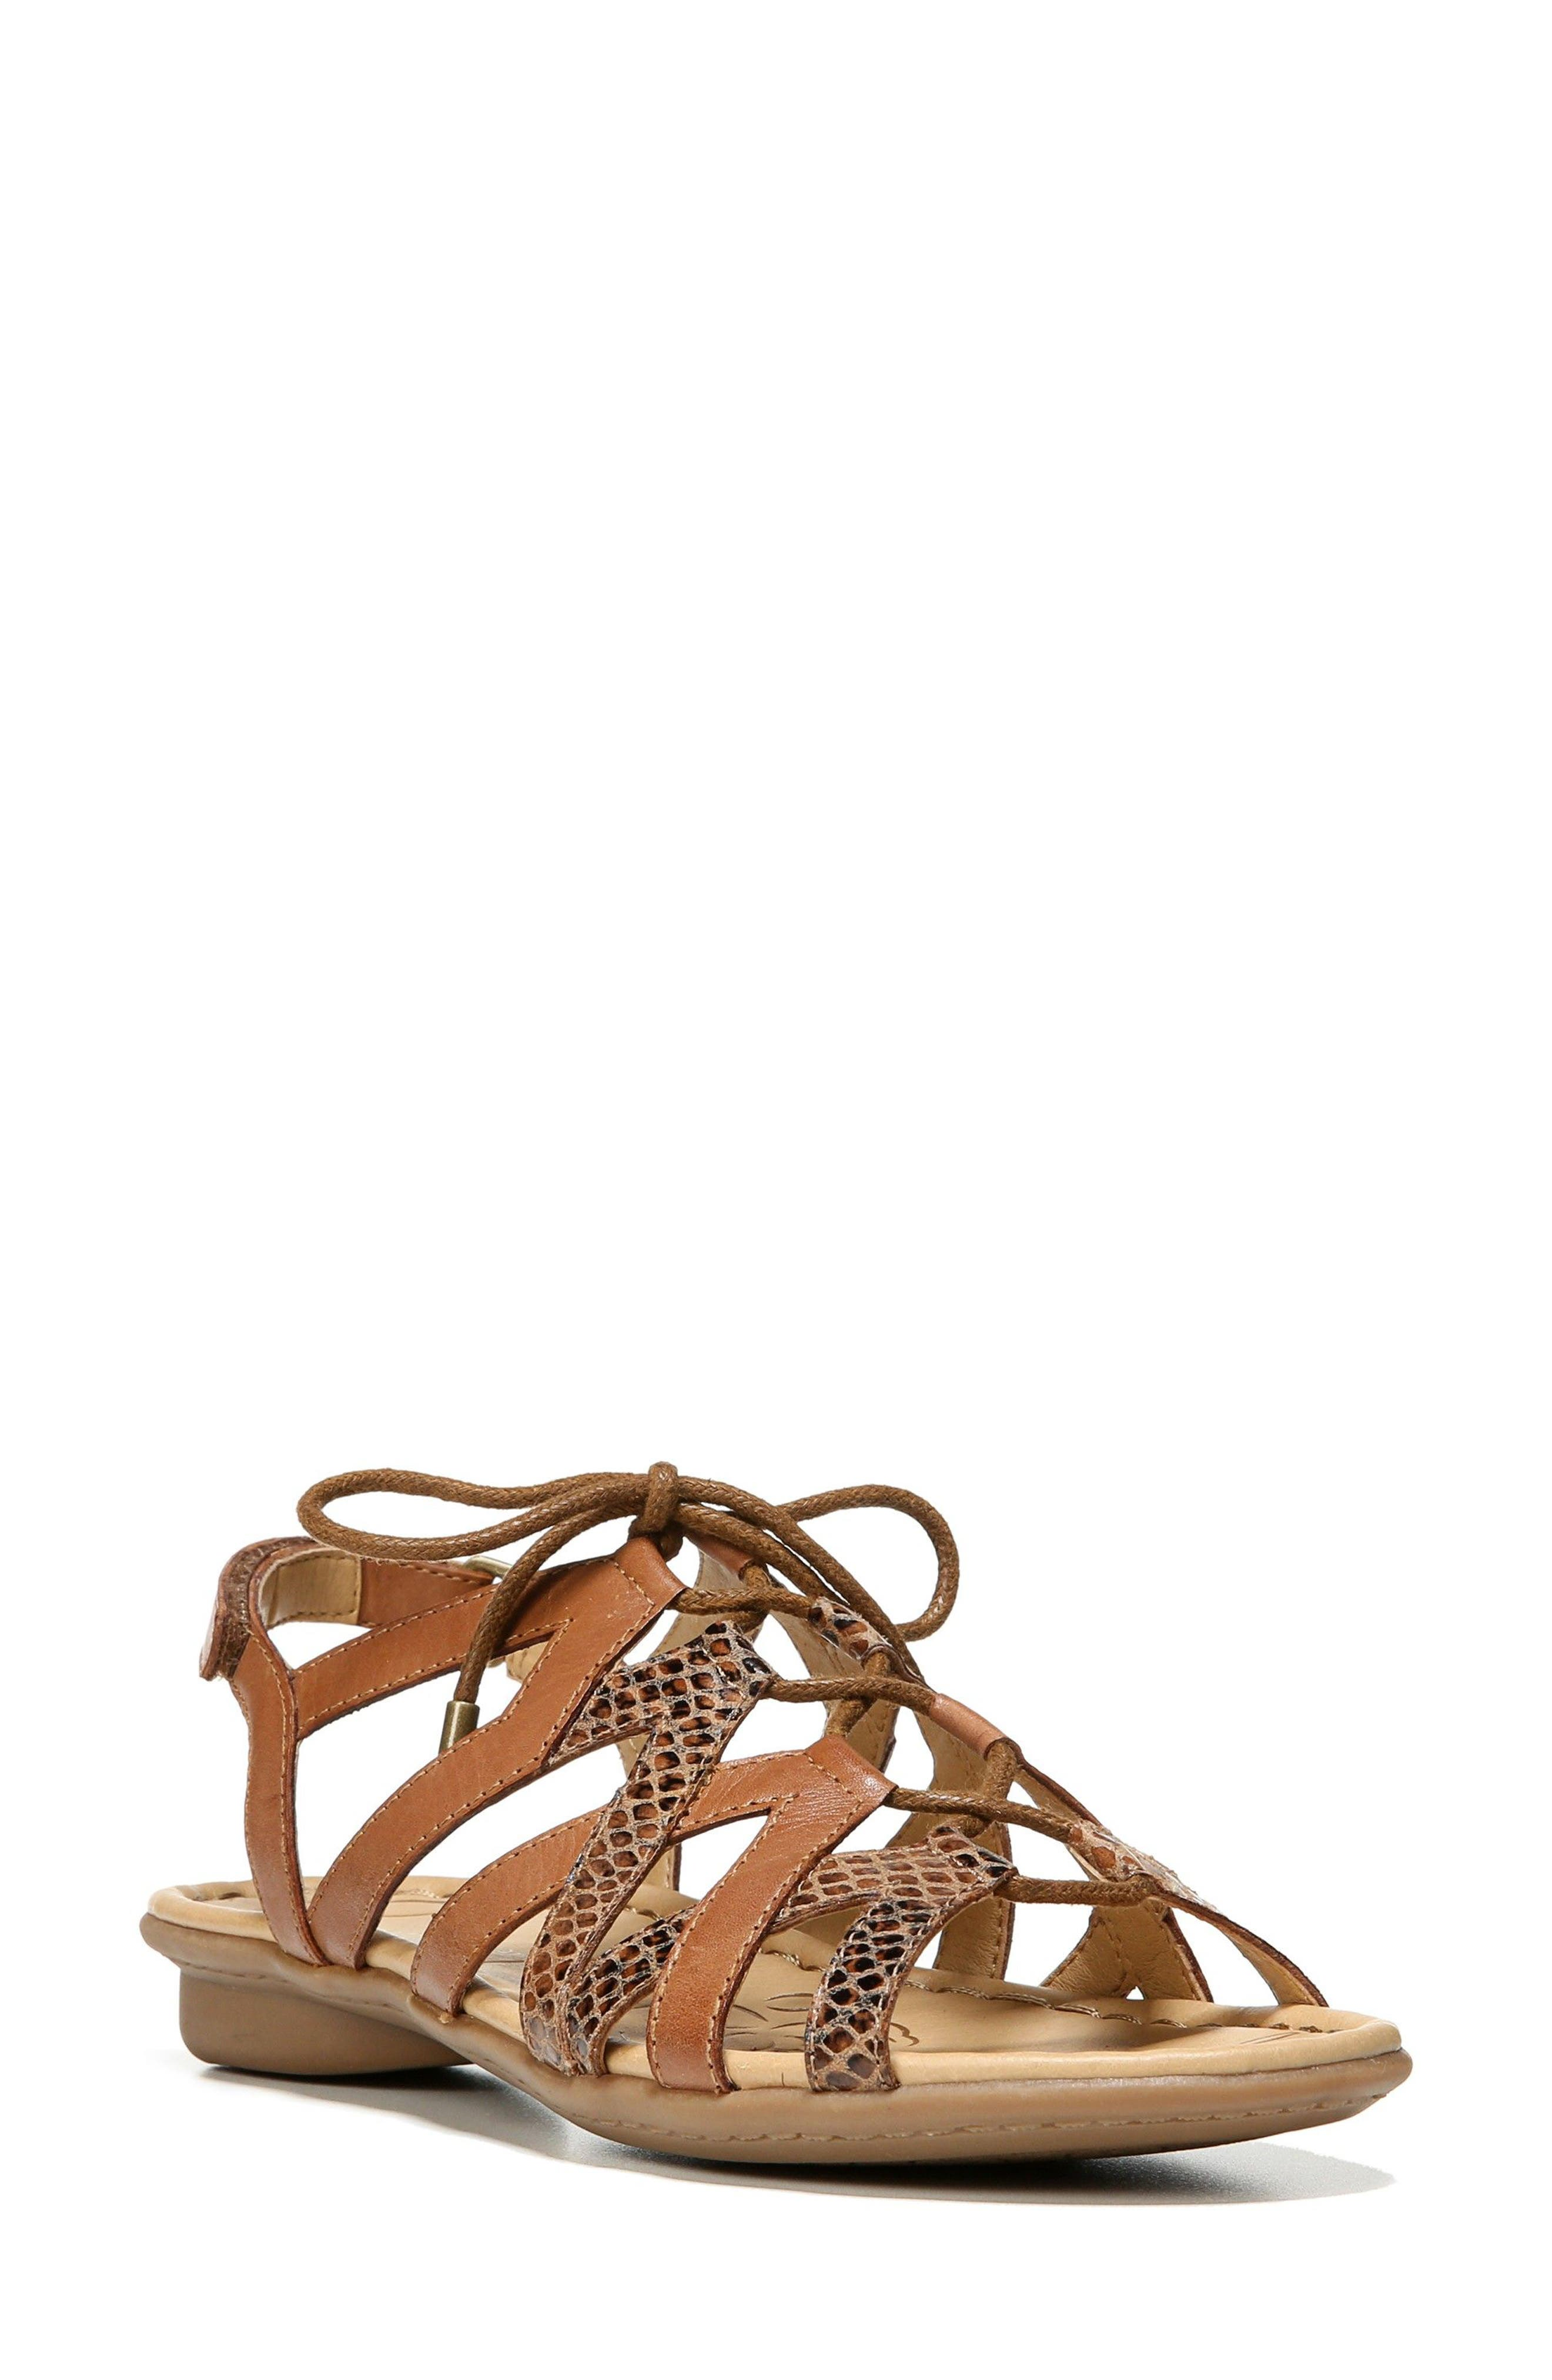 'Whimsy' Ghillie Sandal,                         Main,                         color, Saddle Leather